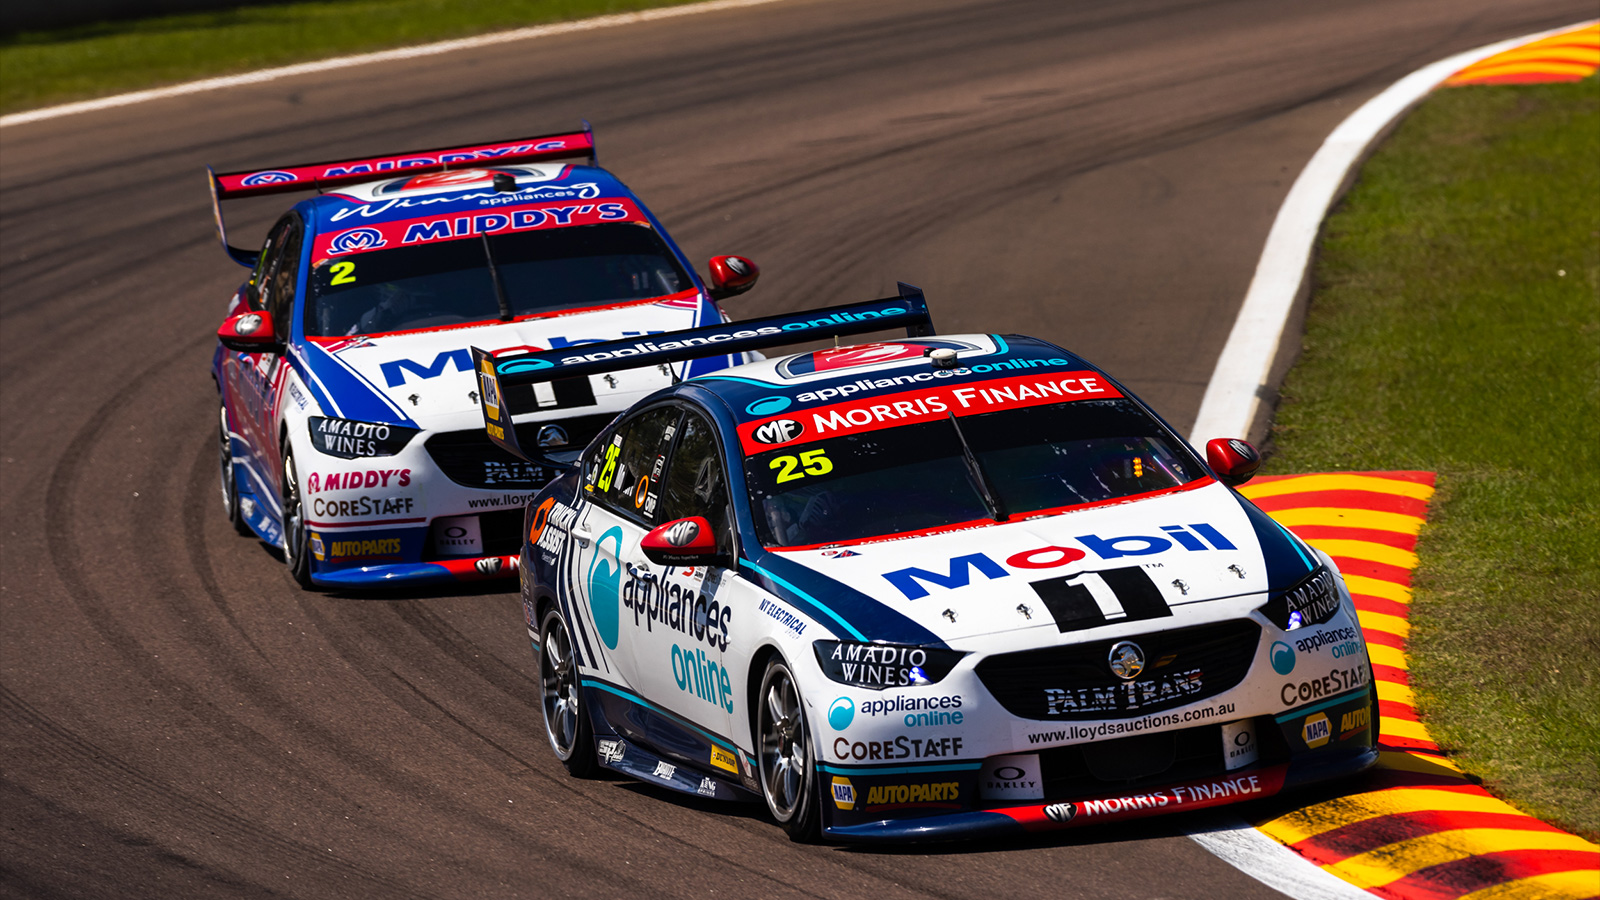 Both cars will be back on track next weekend in Townsville.